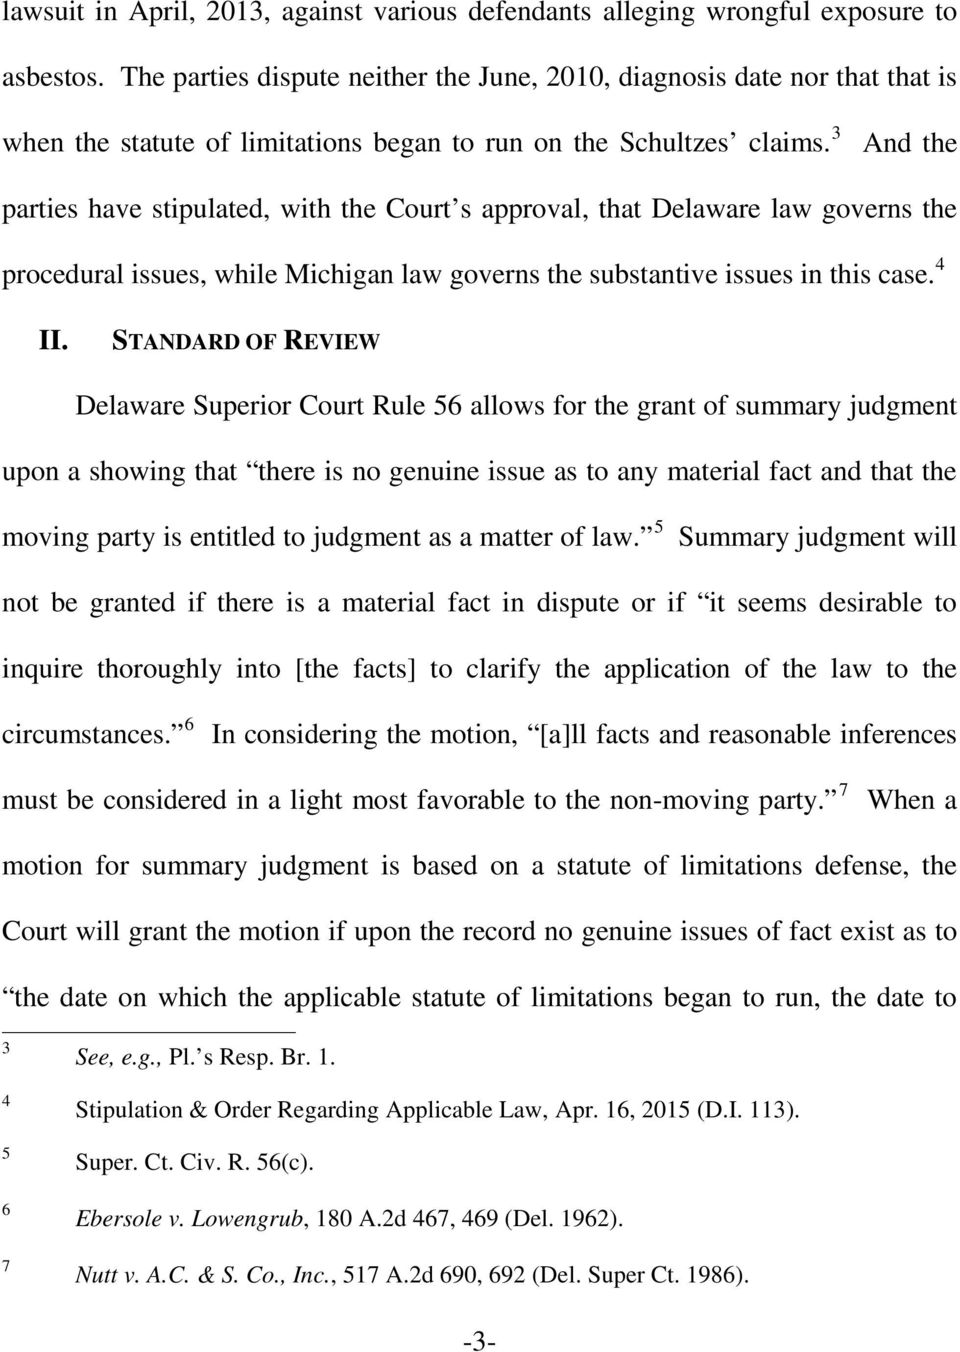 3 And the parties have stipulated, with the Court s approval, that Delaware law governs the procedural issues, while Michigan law governs the substantive issues in this case. 4 II.